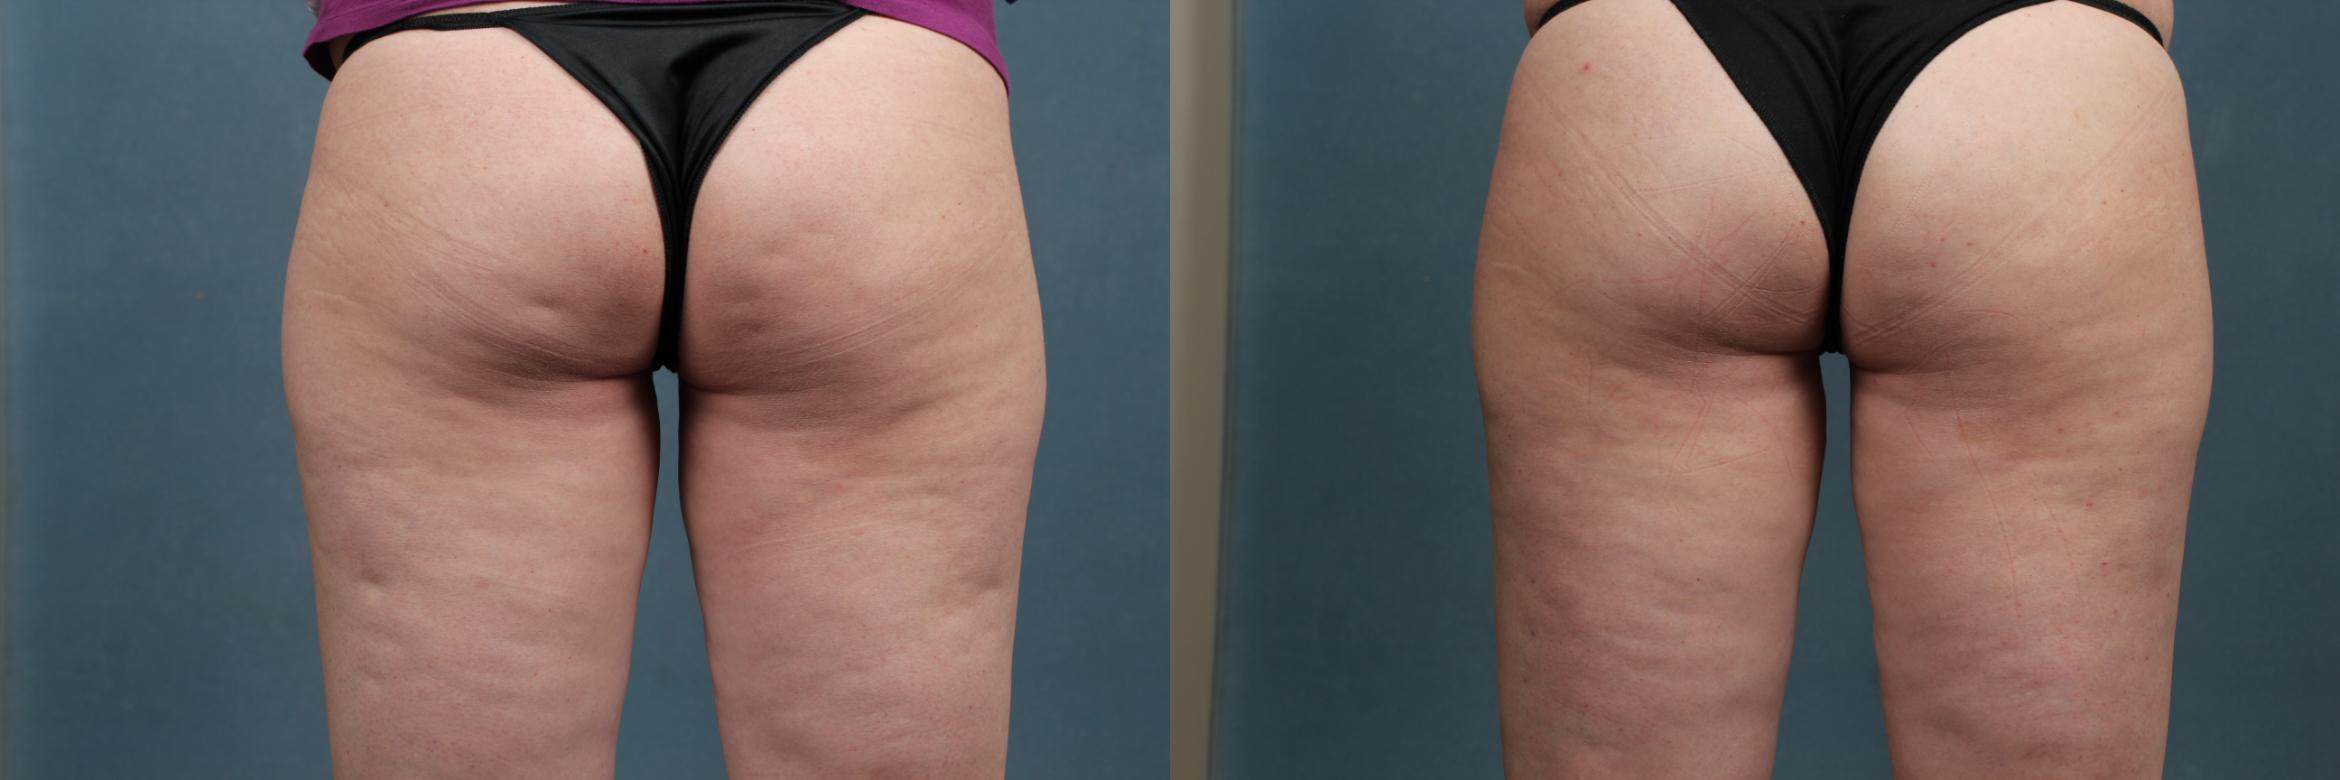 Cellulite Treatments Case 265 Before & After View #1 | Louisville, KY | CaloAesthetics® Plastic Surgery Center